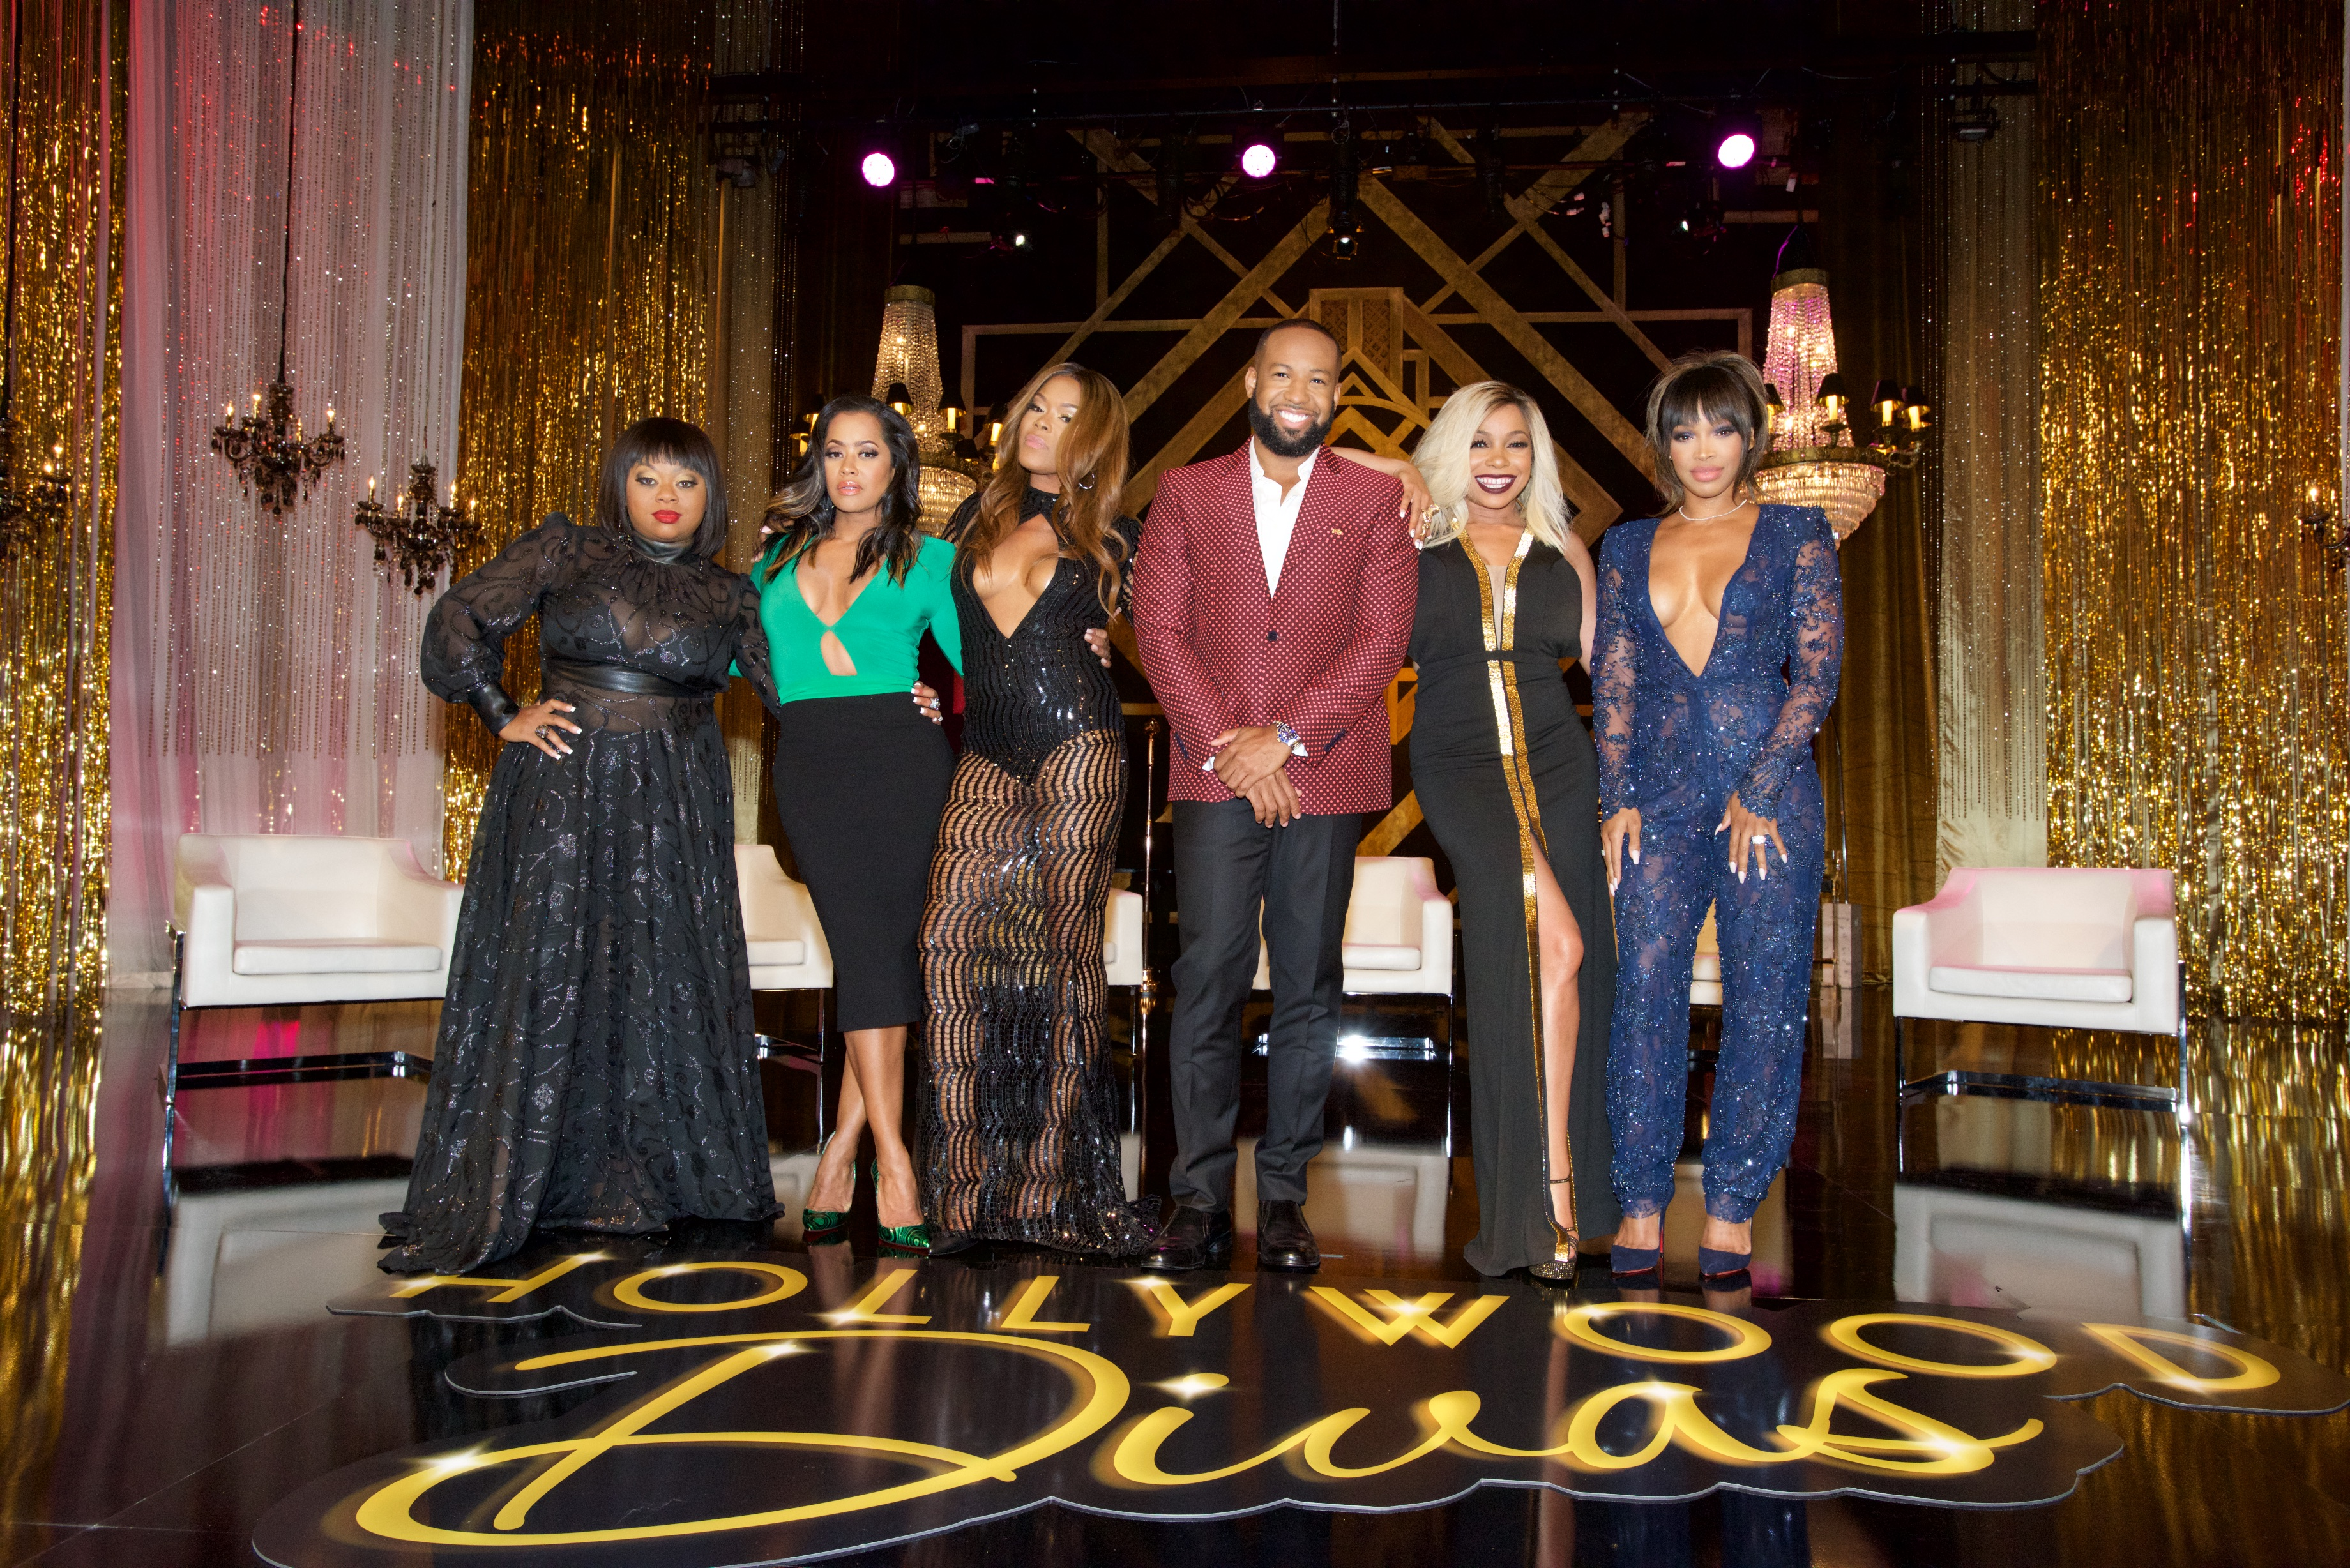 TV One's 'Hollywood Divas' Reunion Special Filming